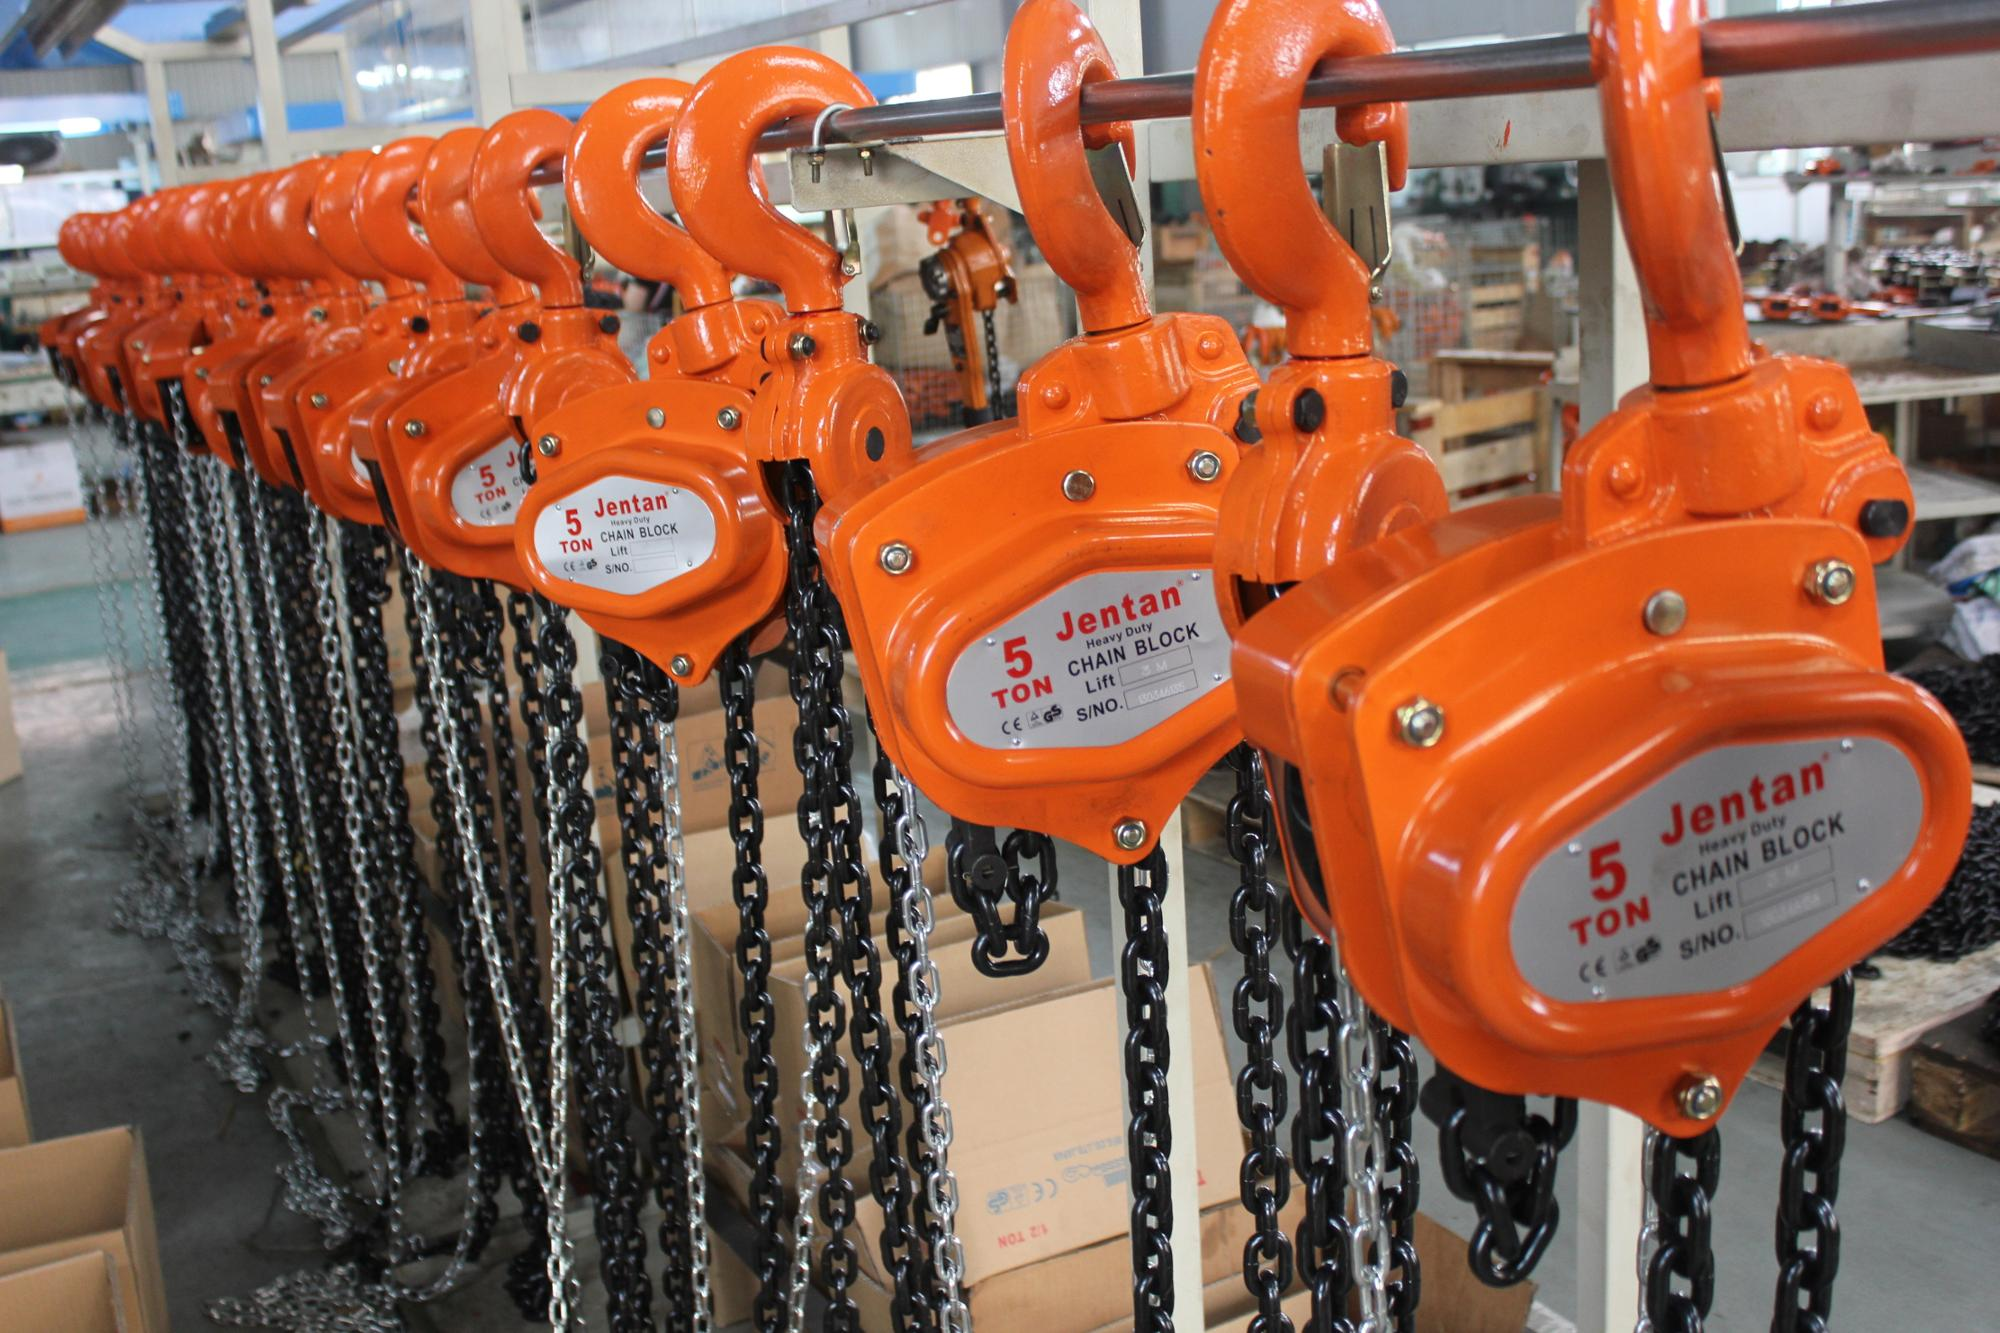 JenTan Chain Block Brands Chain Hoist Lifting Block